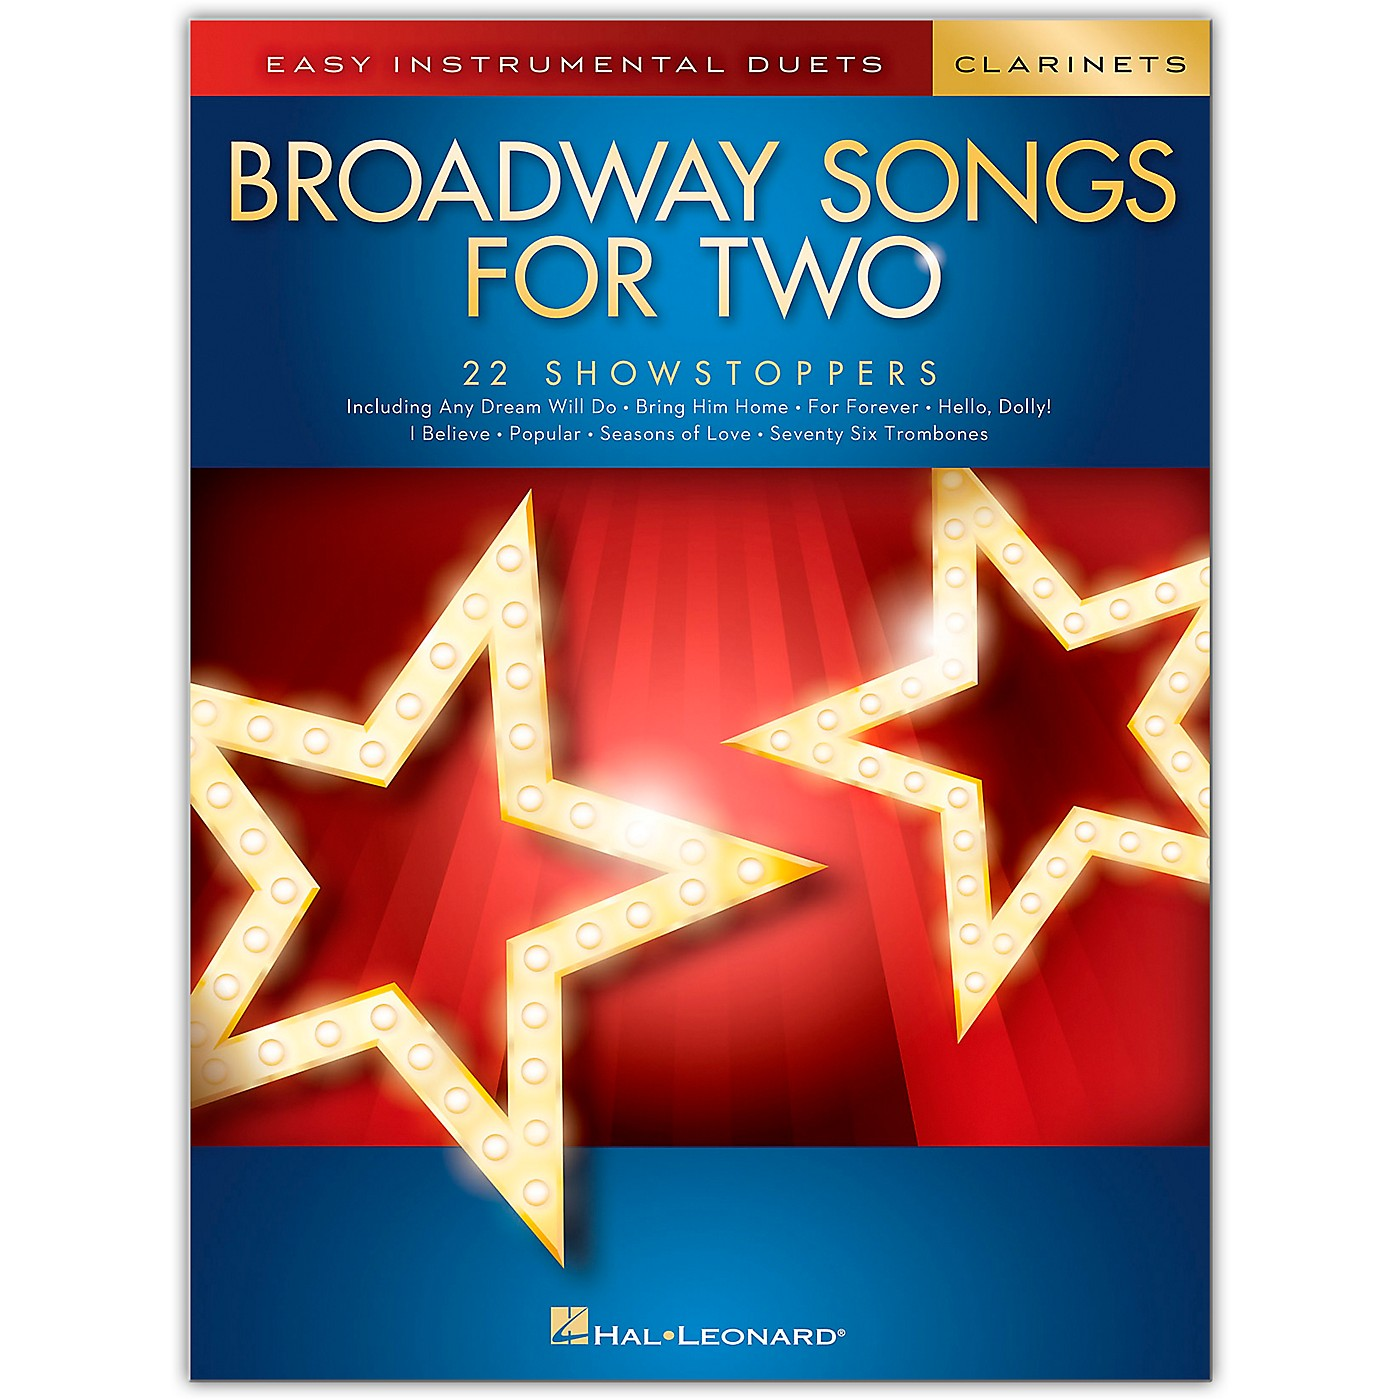 Hal Leonard Broadway Songs for Two Clarinets - Easy Instrumental Duets thumbnail